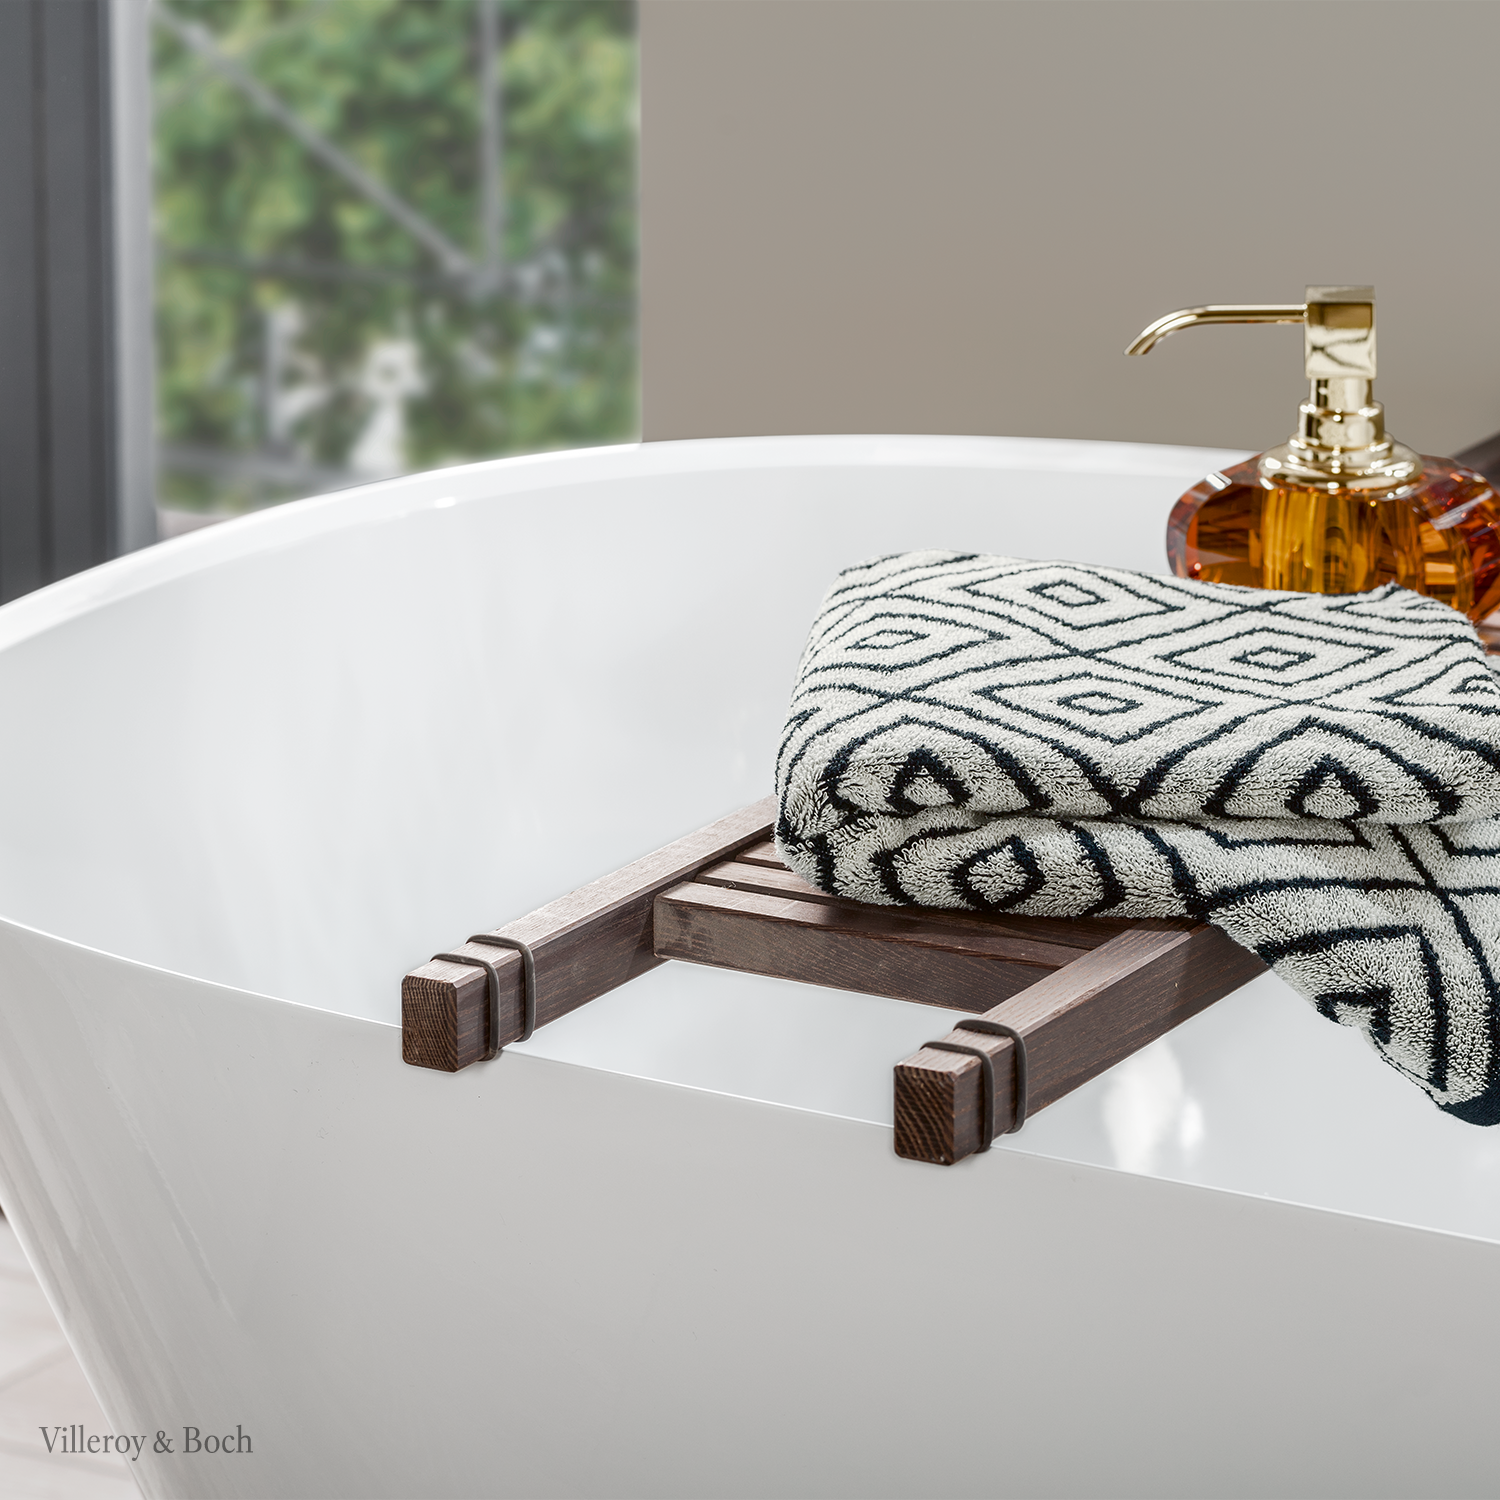 You Love The Idea Of Creating A Relaxing Wellness Atmosphere At Home A Freestanding Bathtub Including Necessary Spa Essantials Are The Per In 2020 Badewanne Handtucher